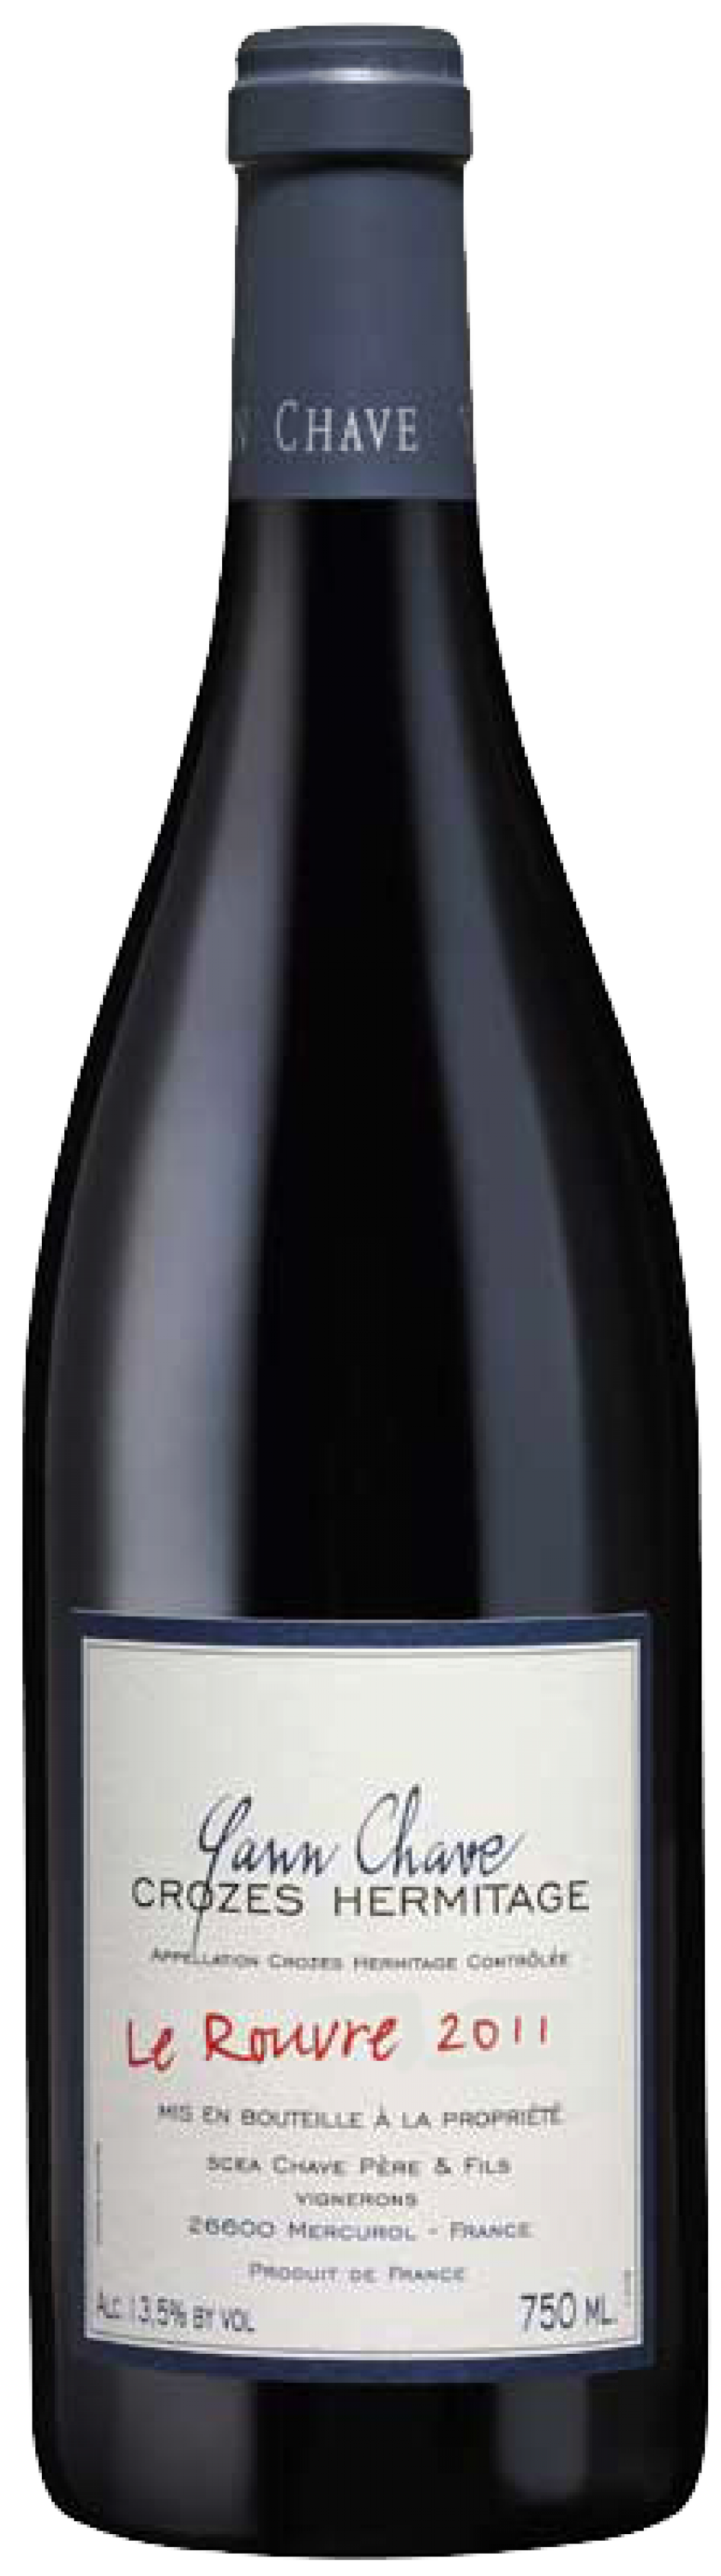 files/images/wines/France/yann-chave-northern-rhone/FRCC28_pic_big.png